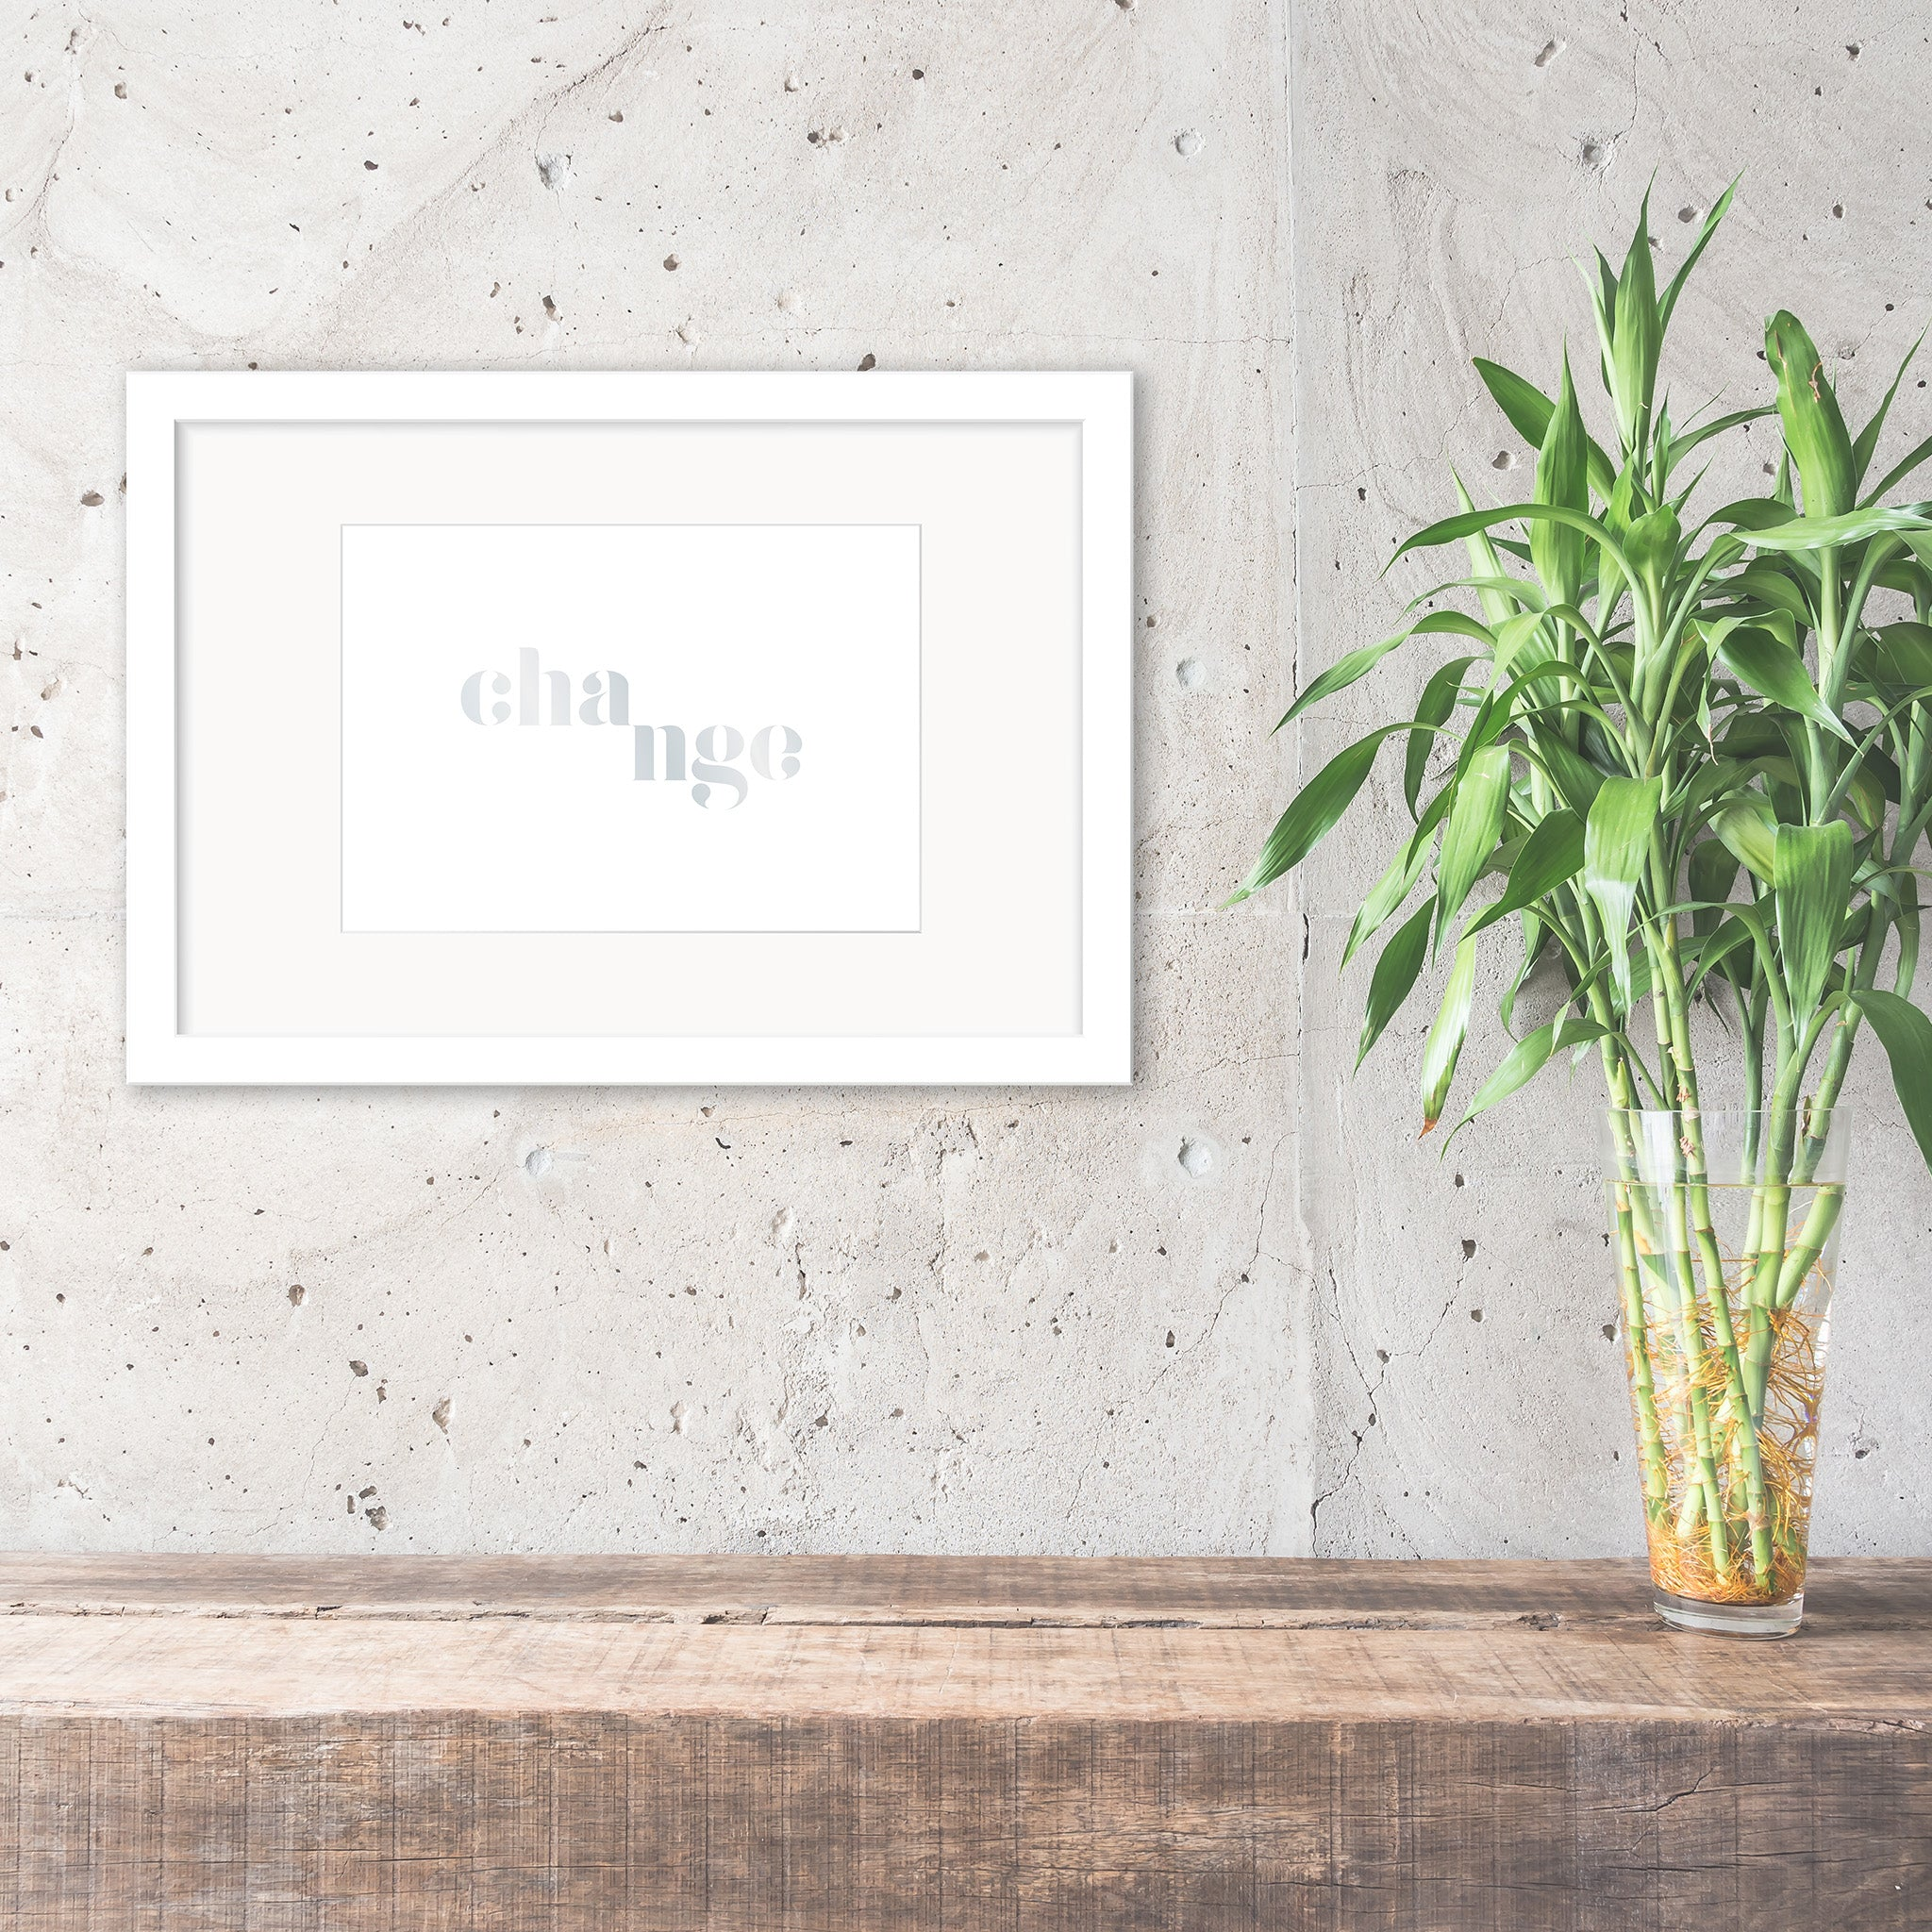 'Change' Reflection Foil Print - Oregano Designs